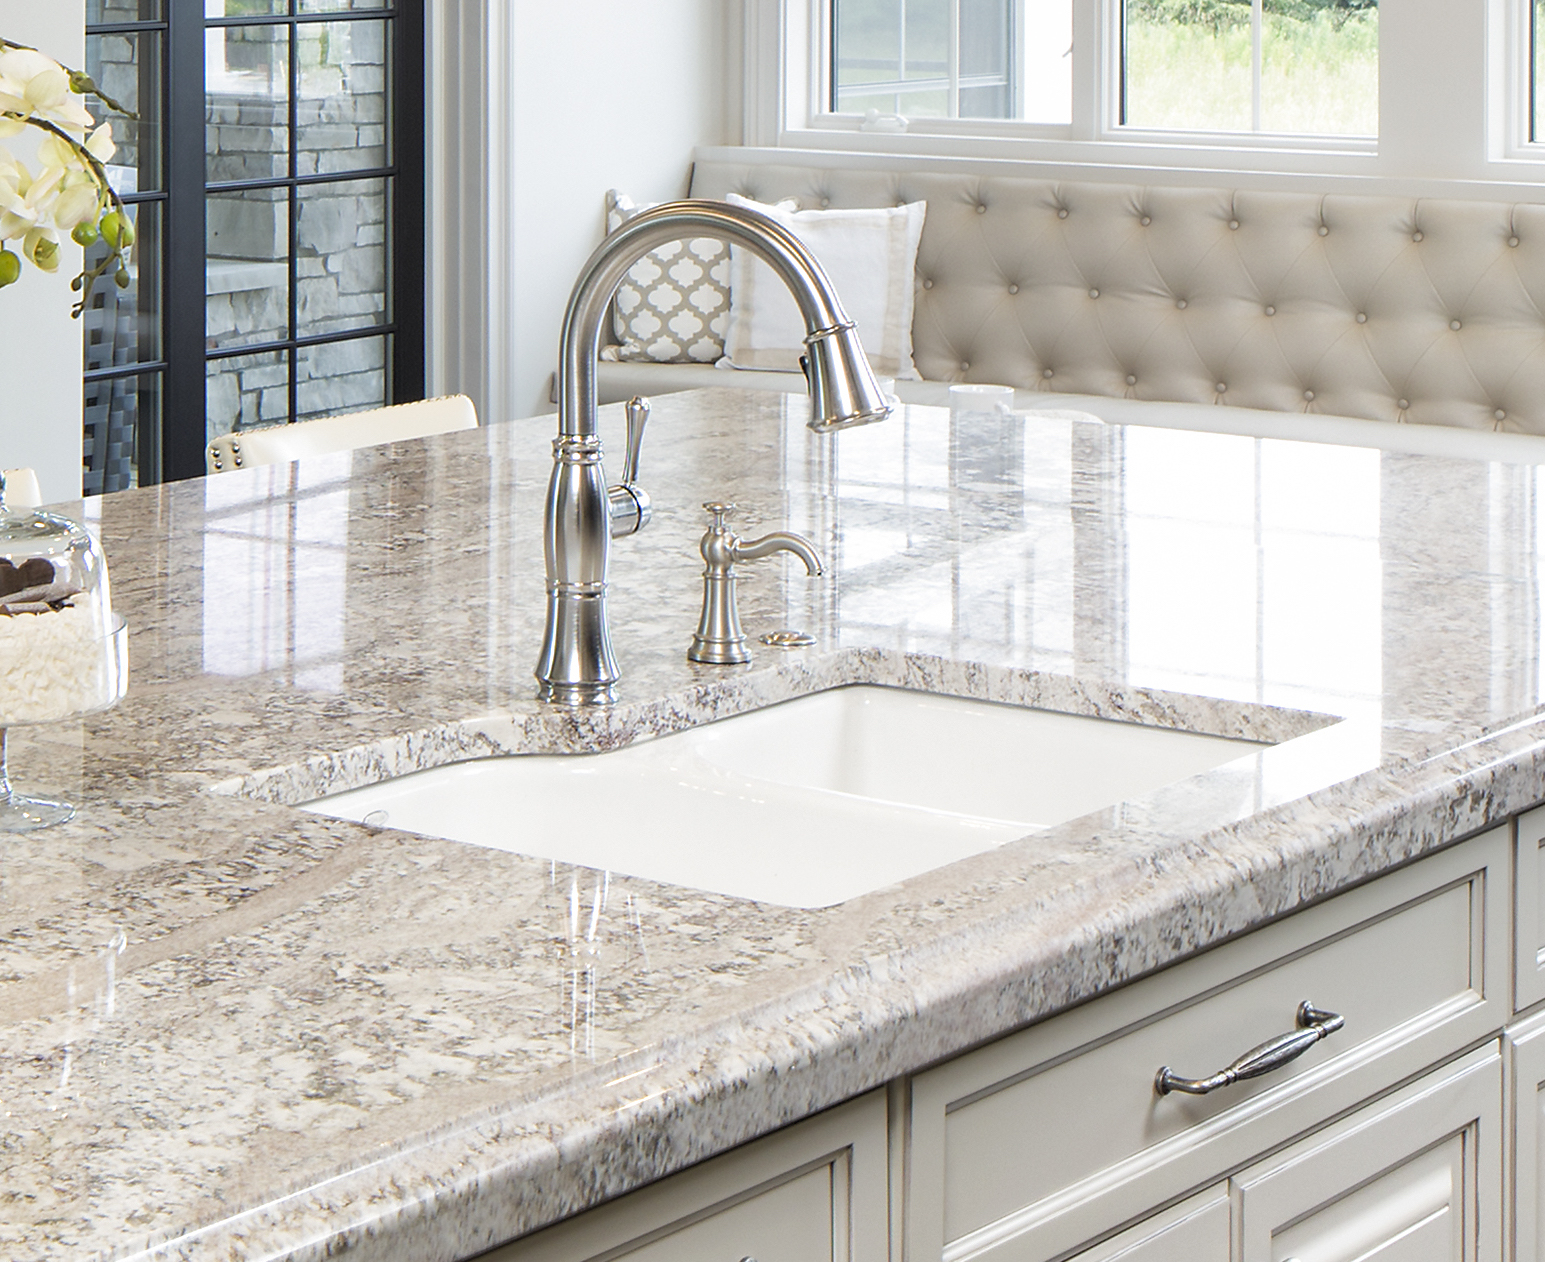 Kitchen Faucets For Granite Countertops Sink Options For Granite Countertops Bathroom And Kitchen